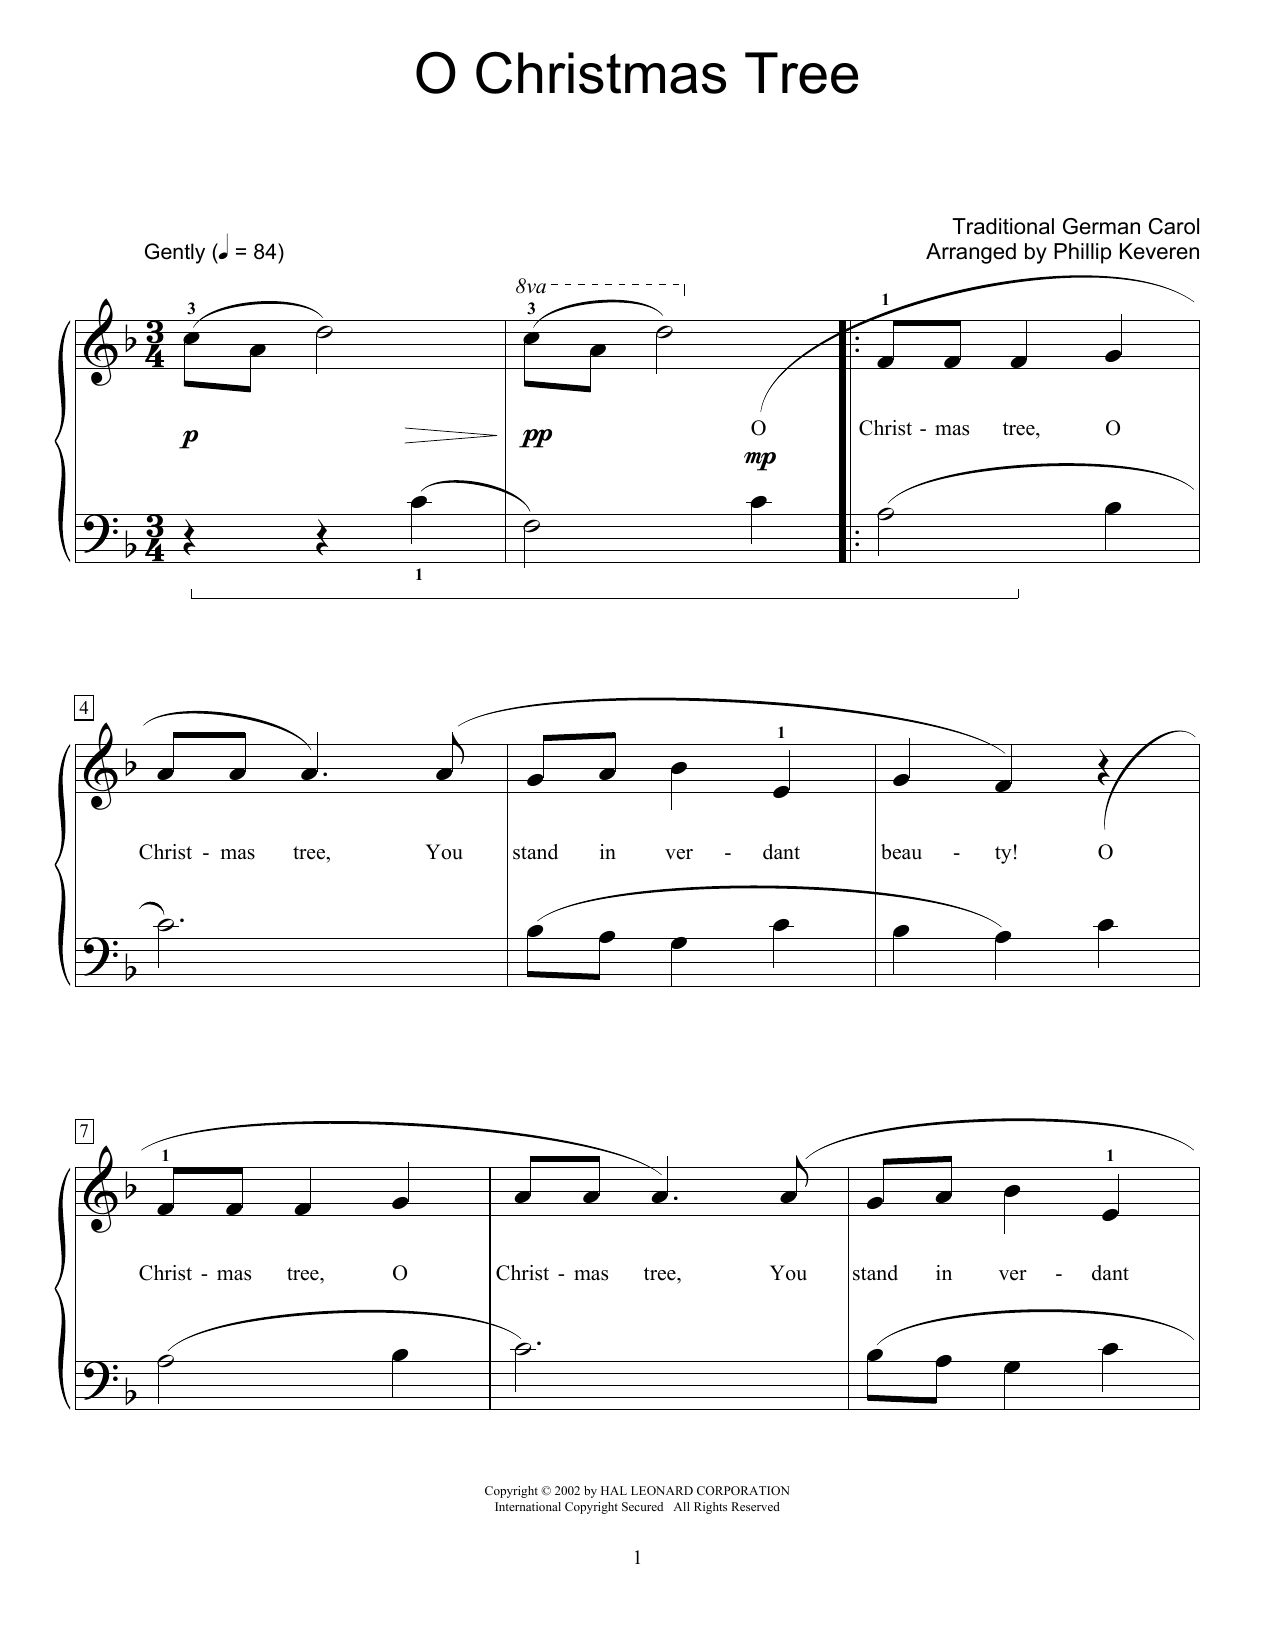 O Christmas Tree Sheet Music | Christmas Carol | Educational Piano